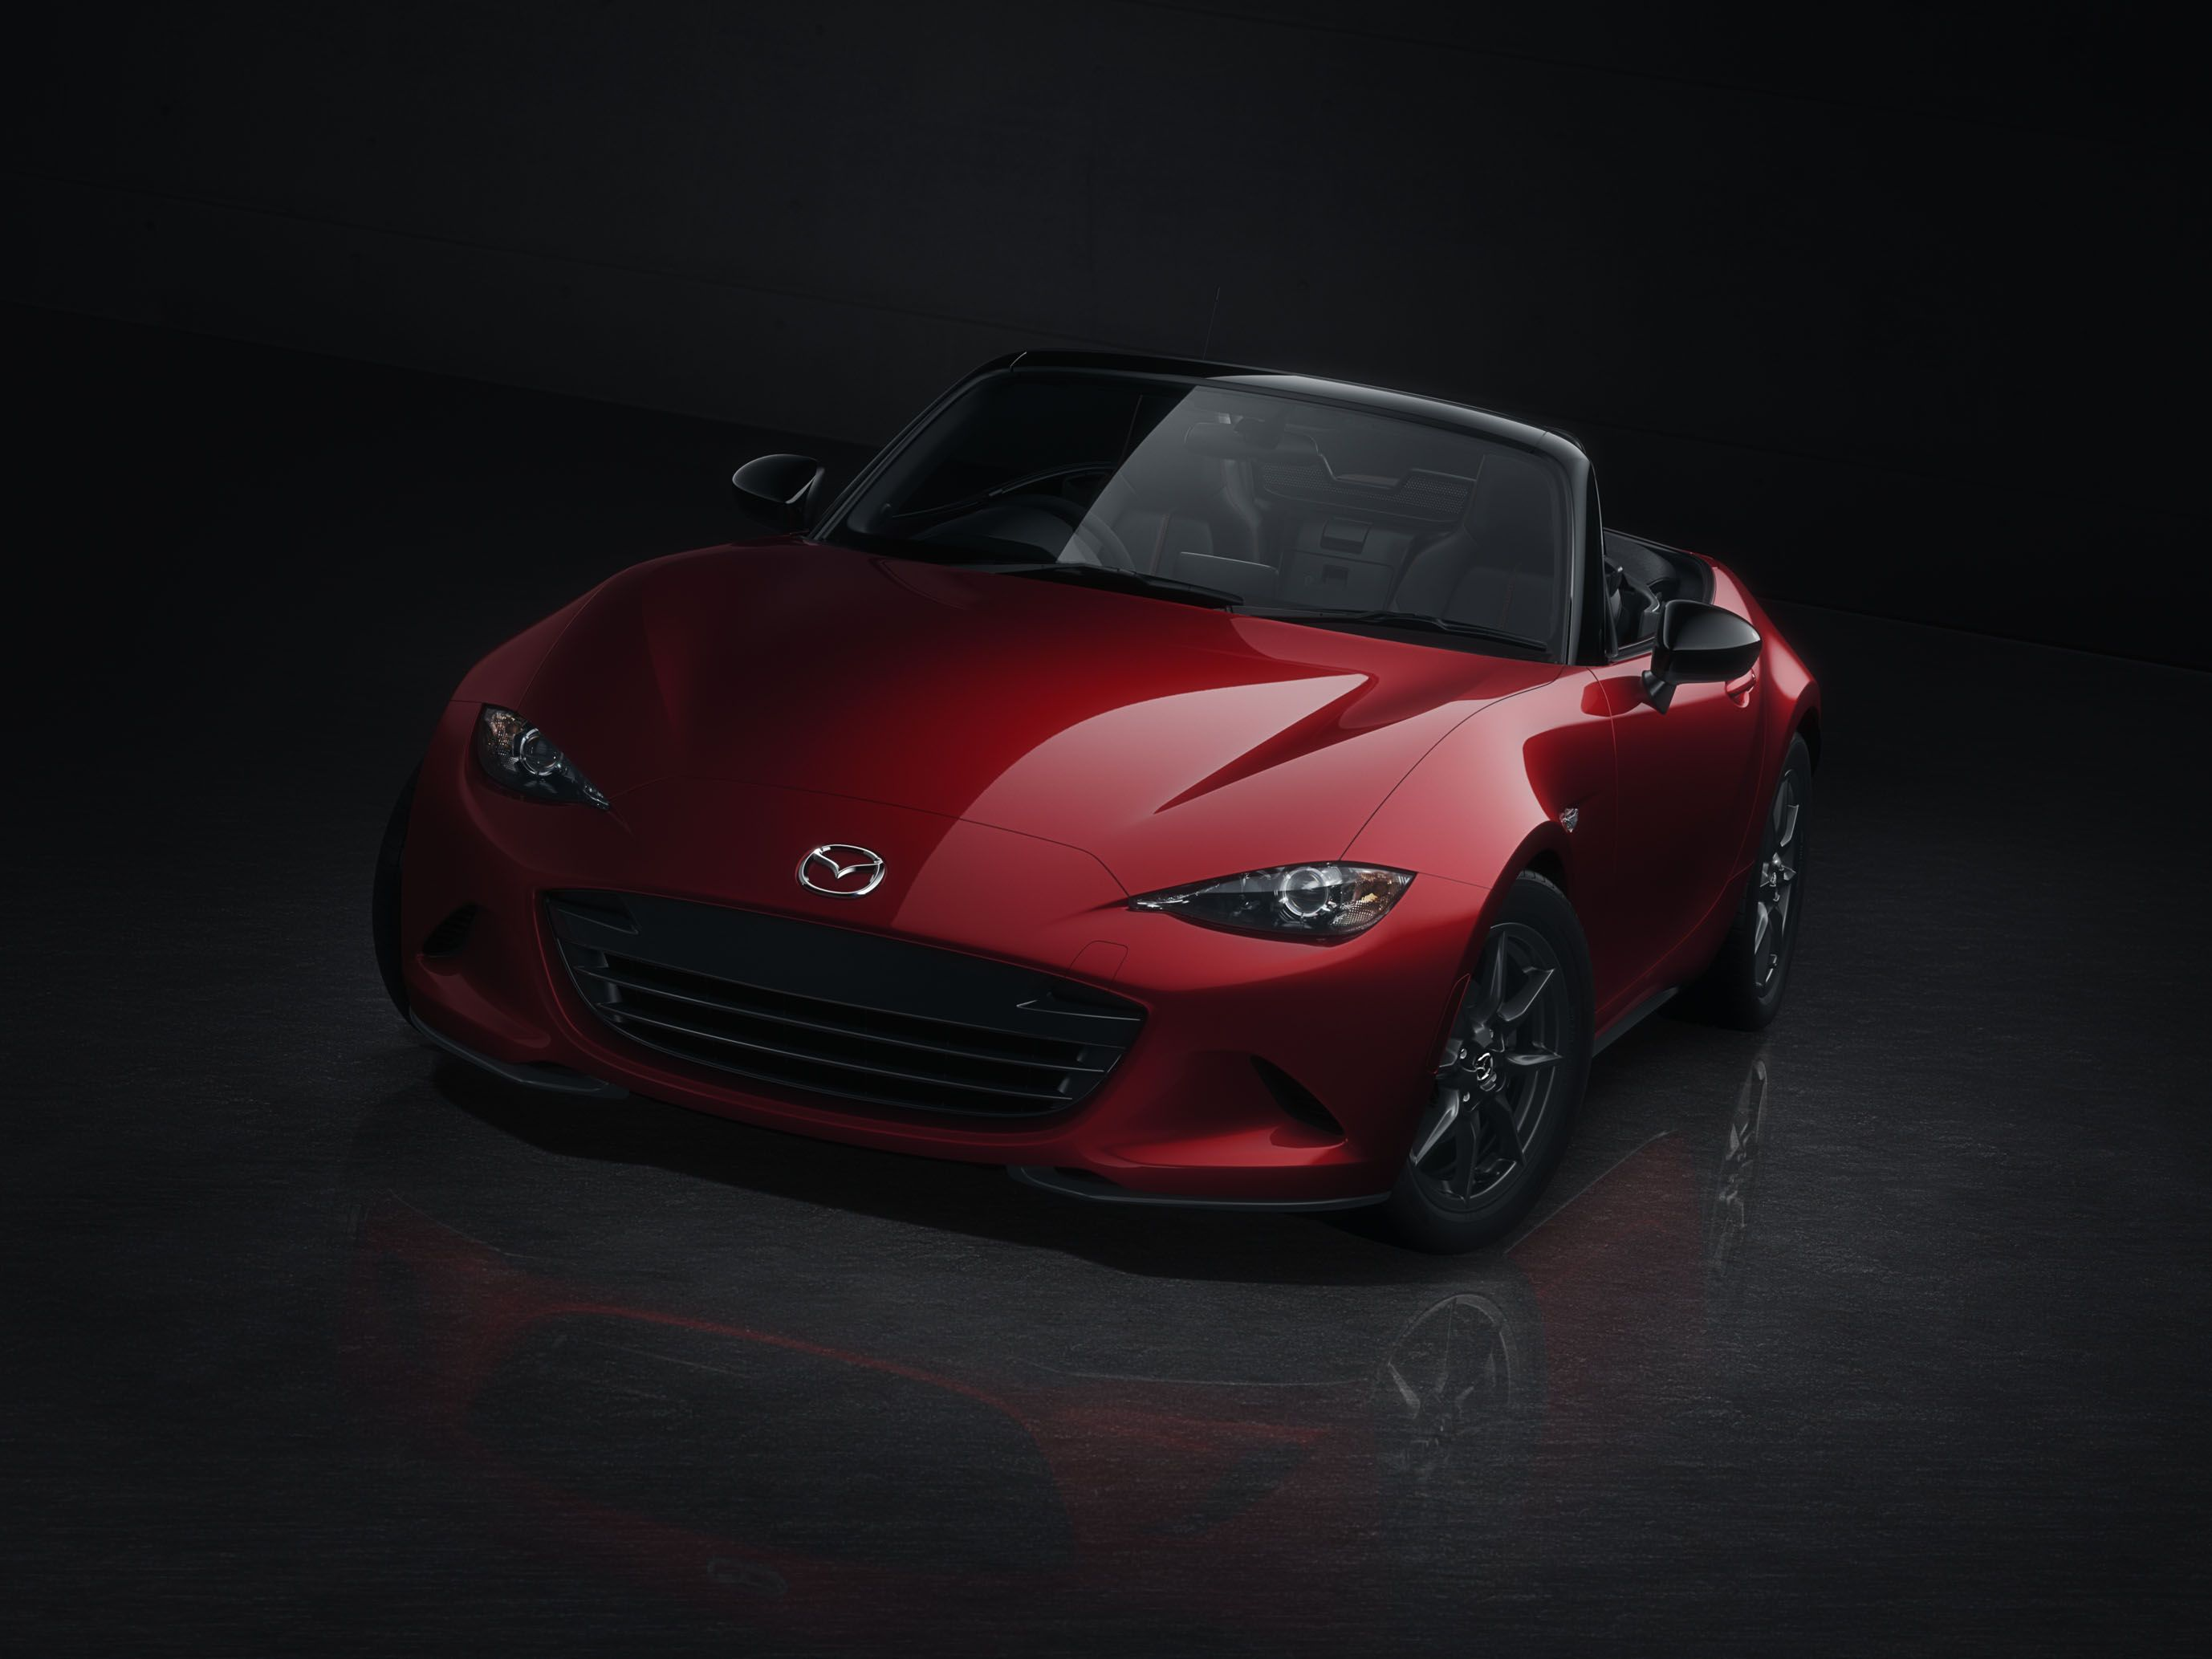 mazda ma high announced inside dealership image download release res bannerf cup gold press dealerships